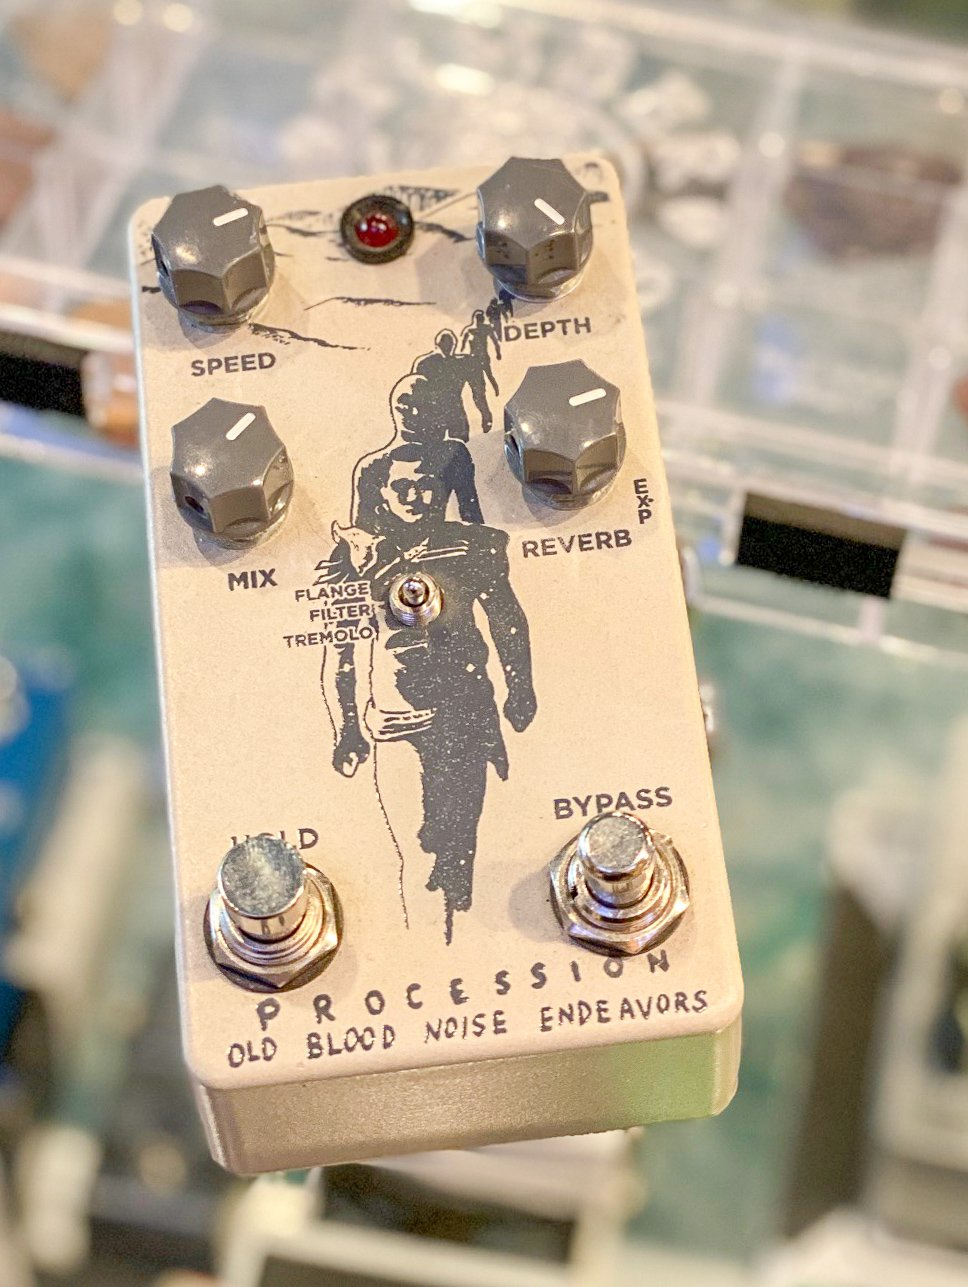 Old Blood Noise Endeavors Procession reverb pedal